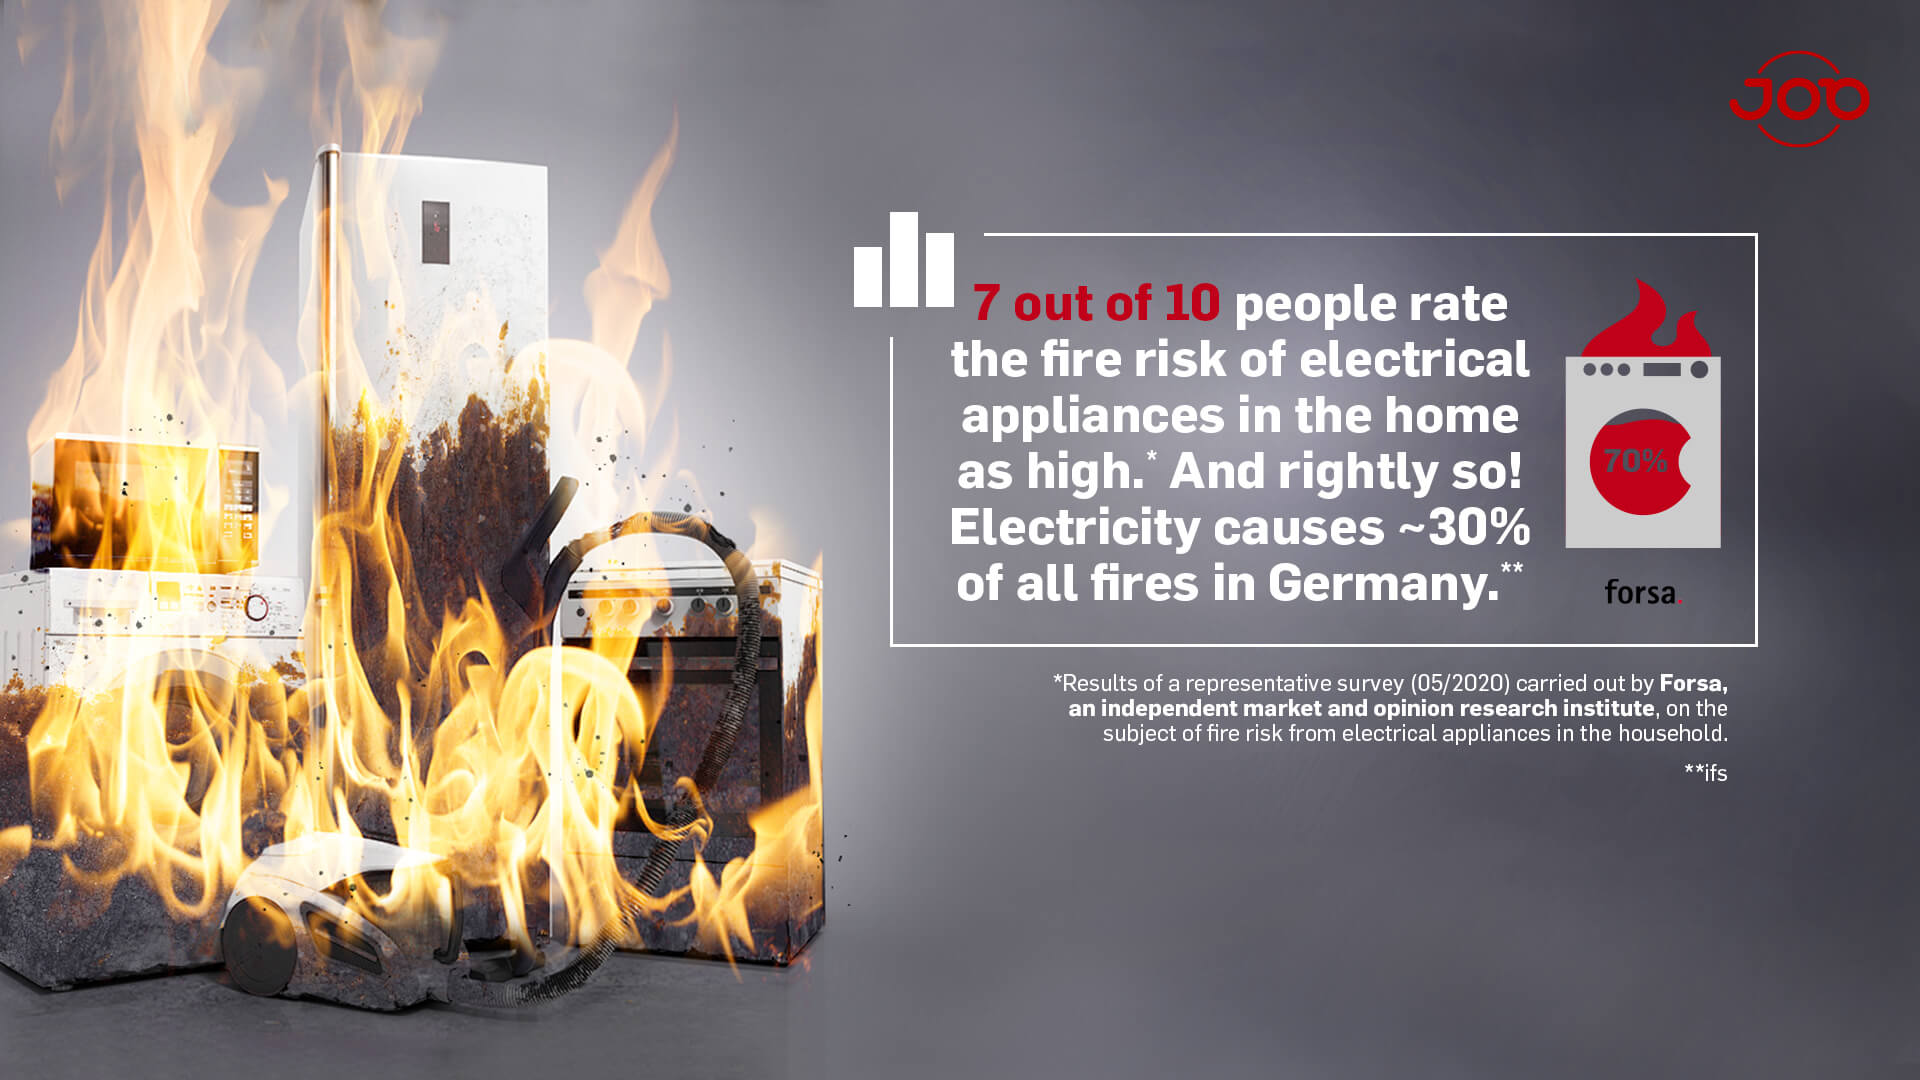 70% rate the fire risk of electrical appliances in the home as high